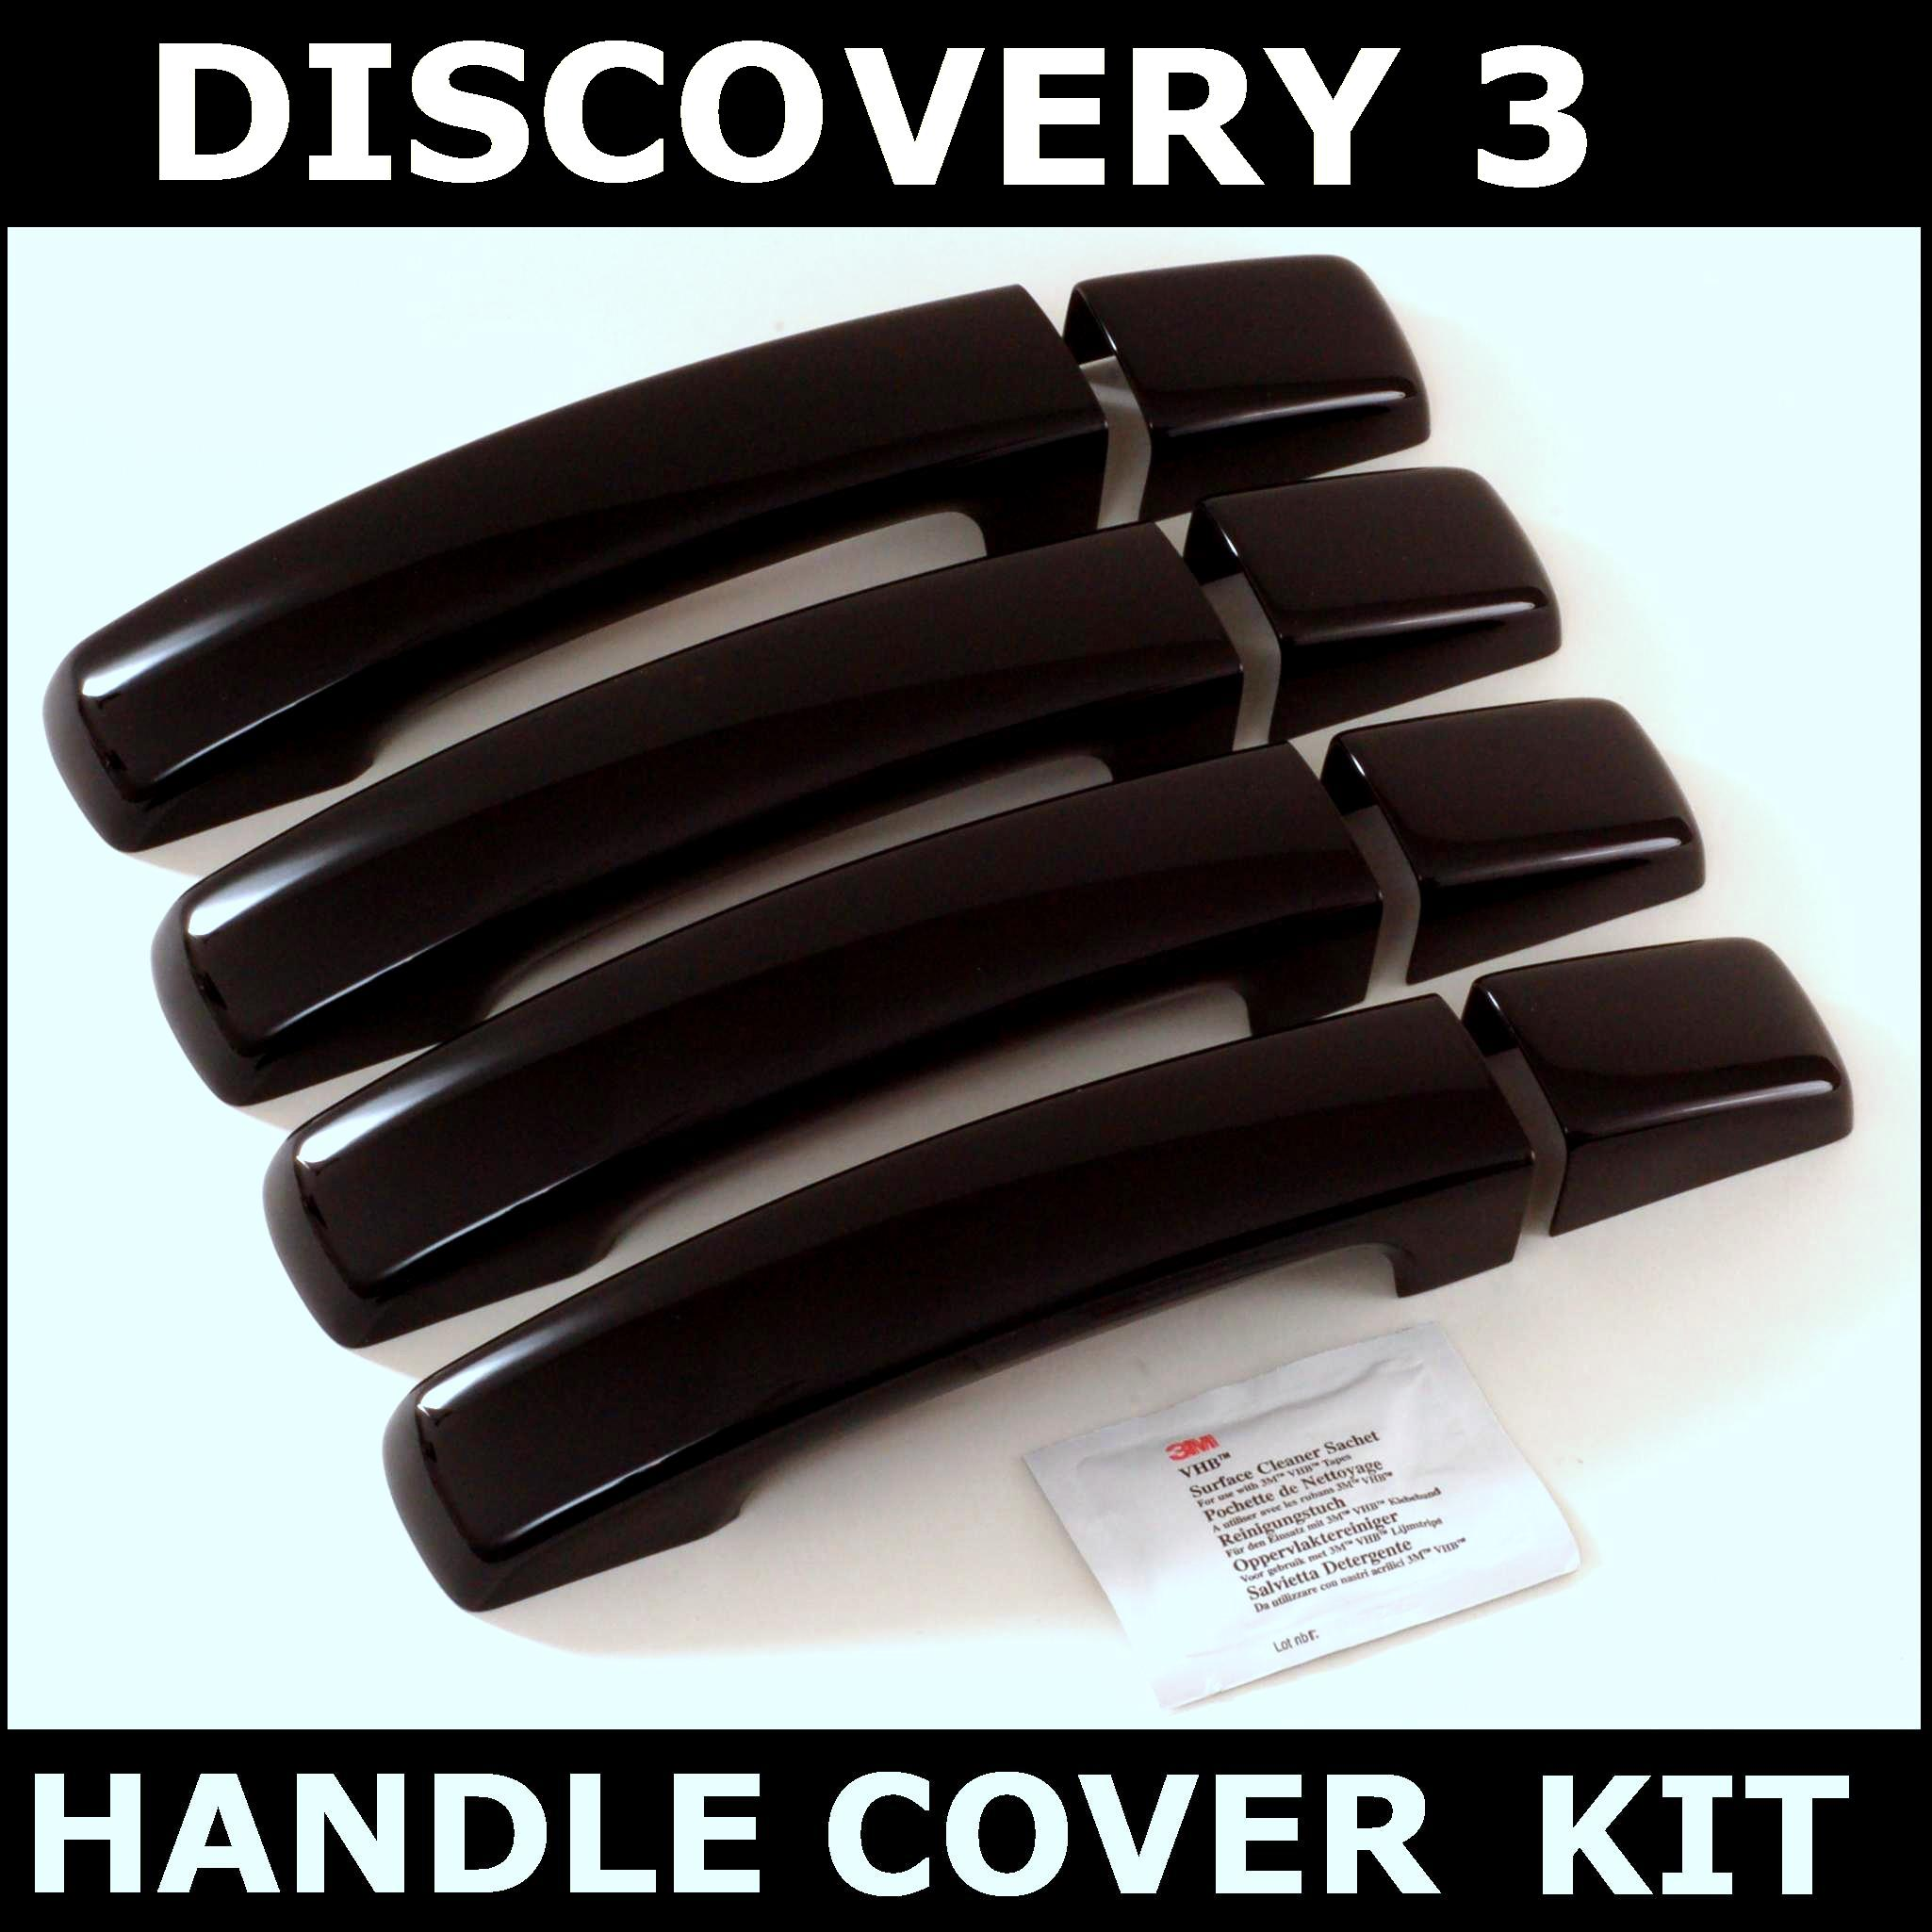 Land Rover Discovery 1 3 Door For Sale: JAVA BLACK DOOR HANDLES Cover Kit For Land Rover Discovery